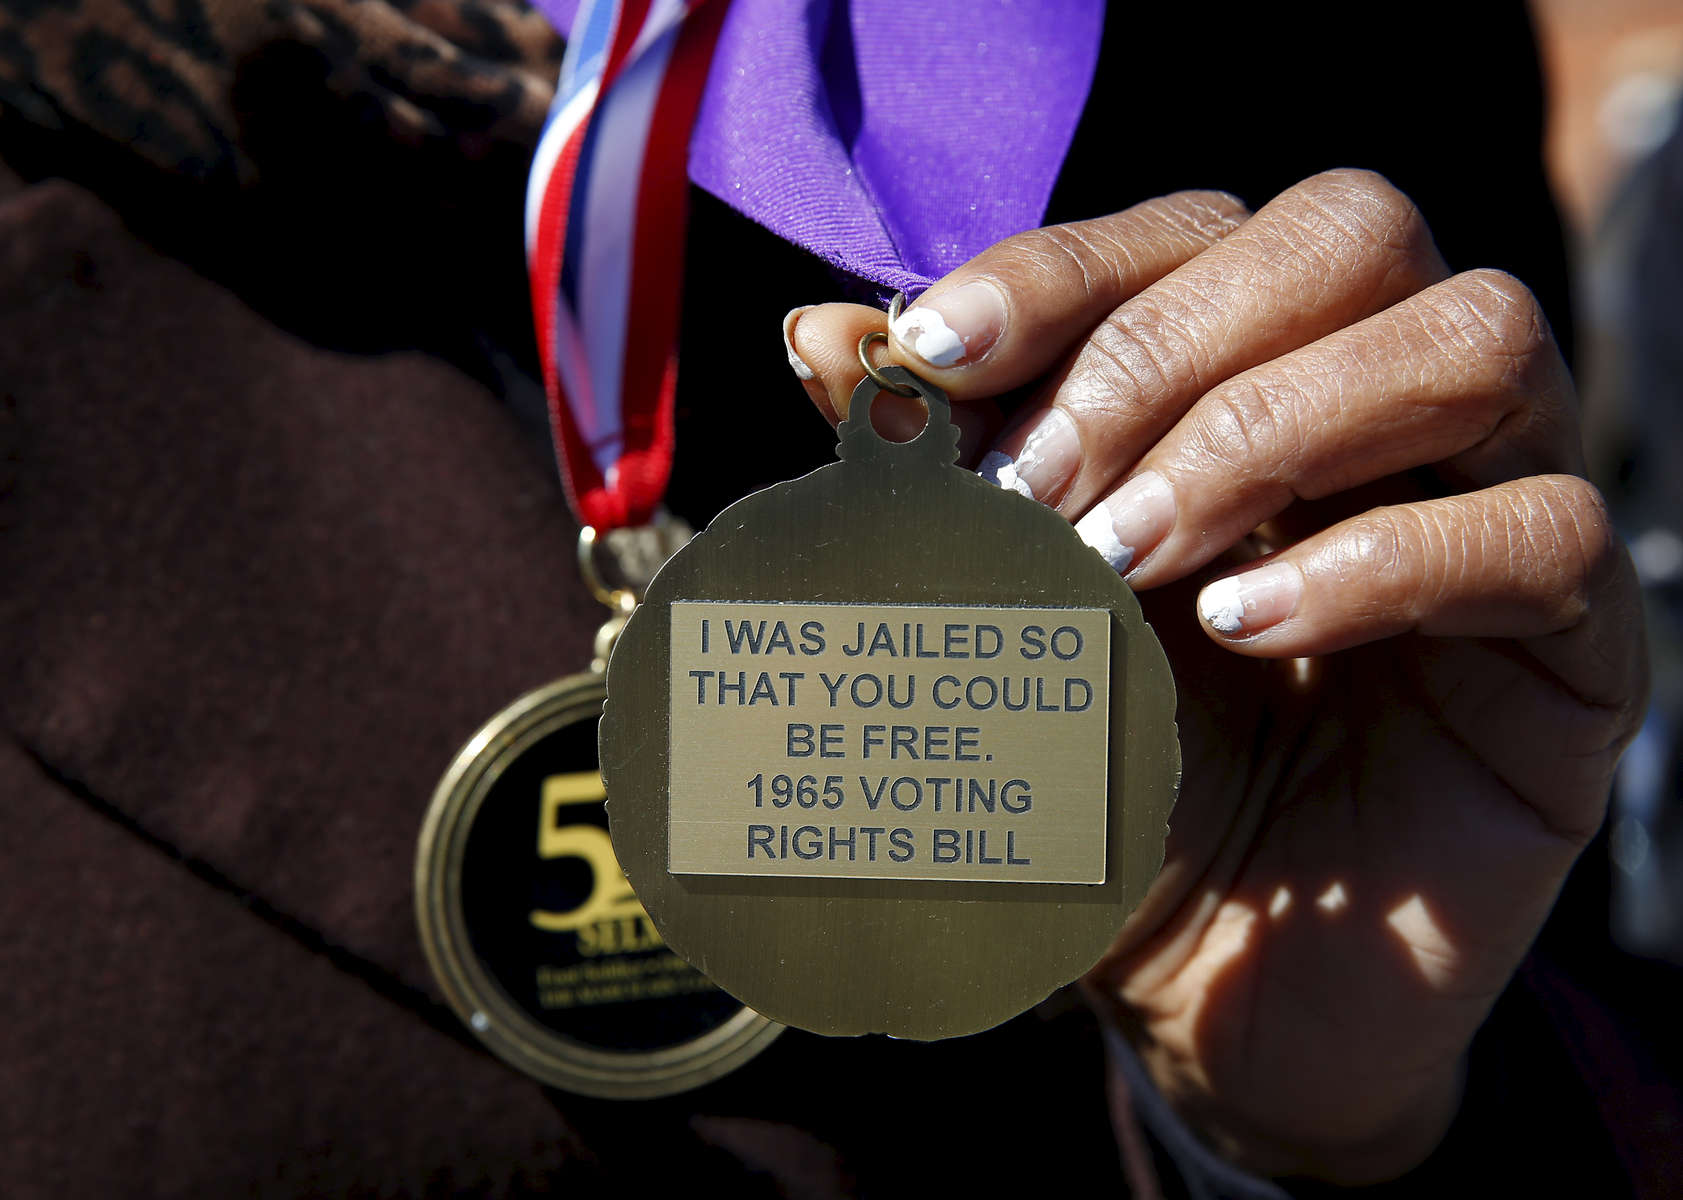 Selma, Alabama -- 3/07/2015-- Linda Hall Gilford of Selma who marched across the Edmund Pettus Bridge at the age of 16 and was beaten as a result shows off the back of a medal in Selma, Alabama March 7, 2015.